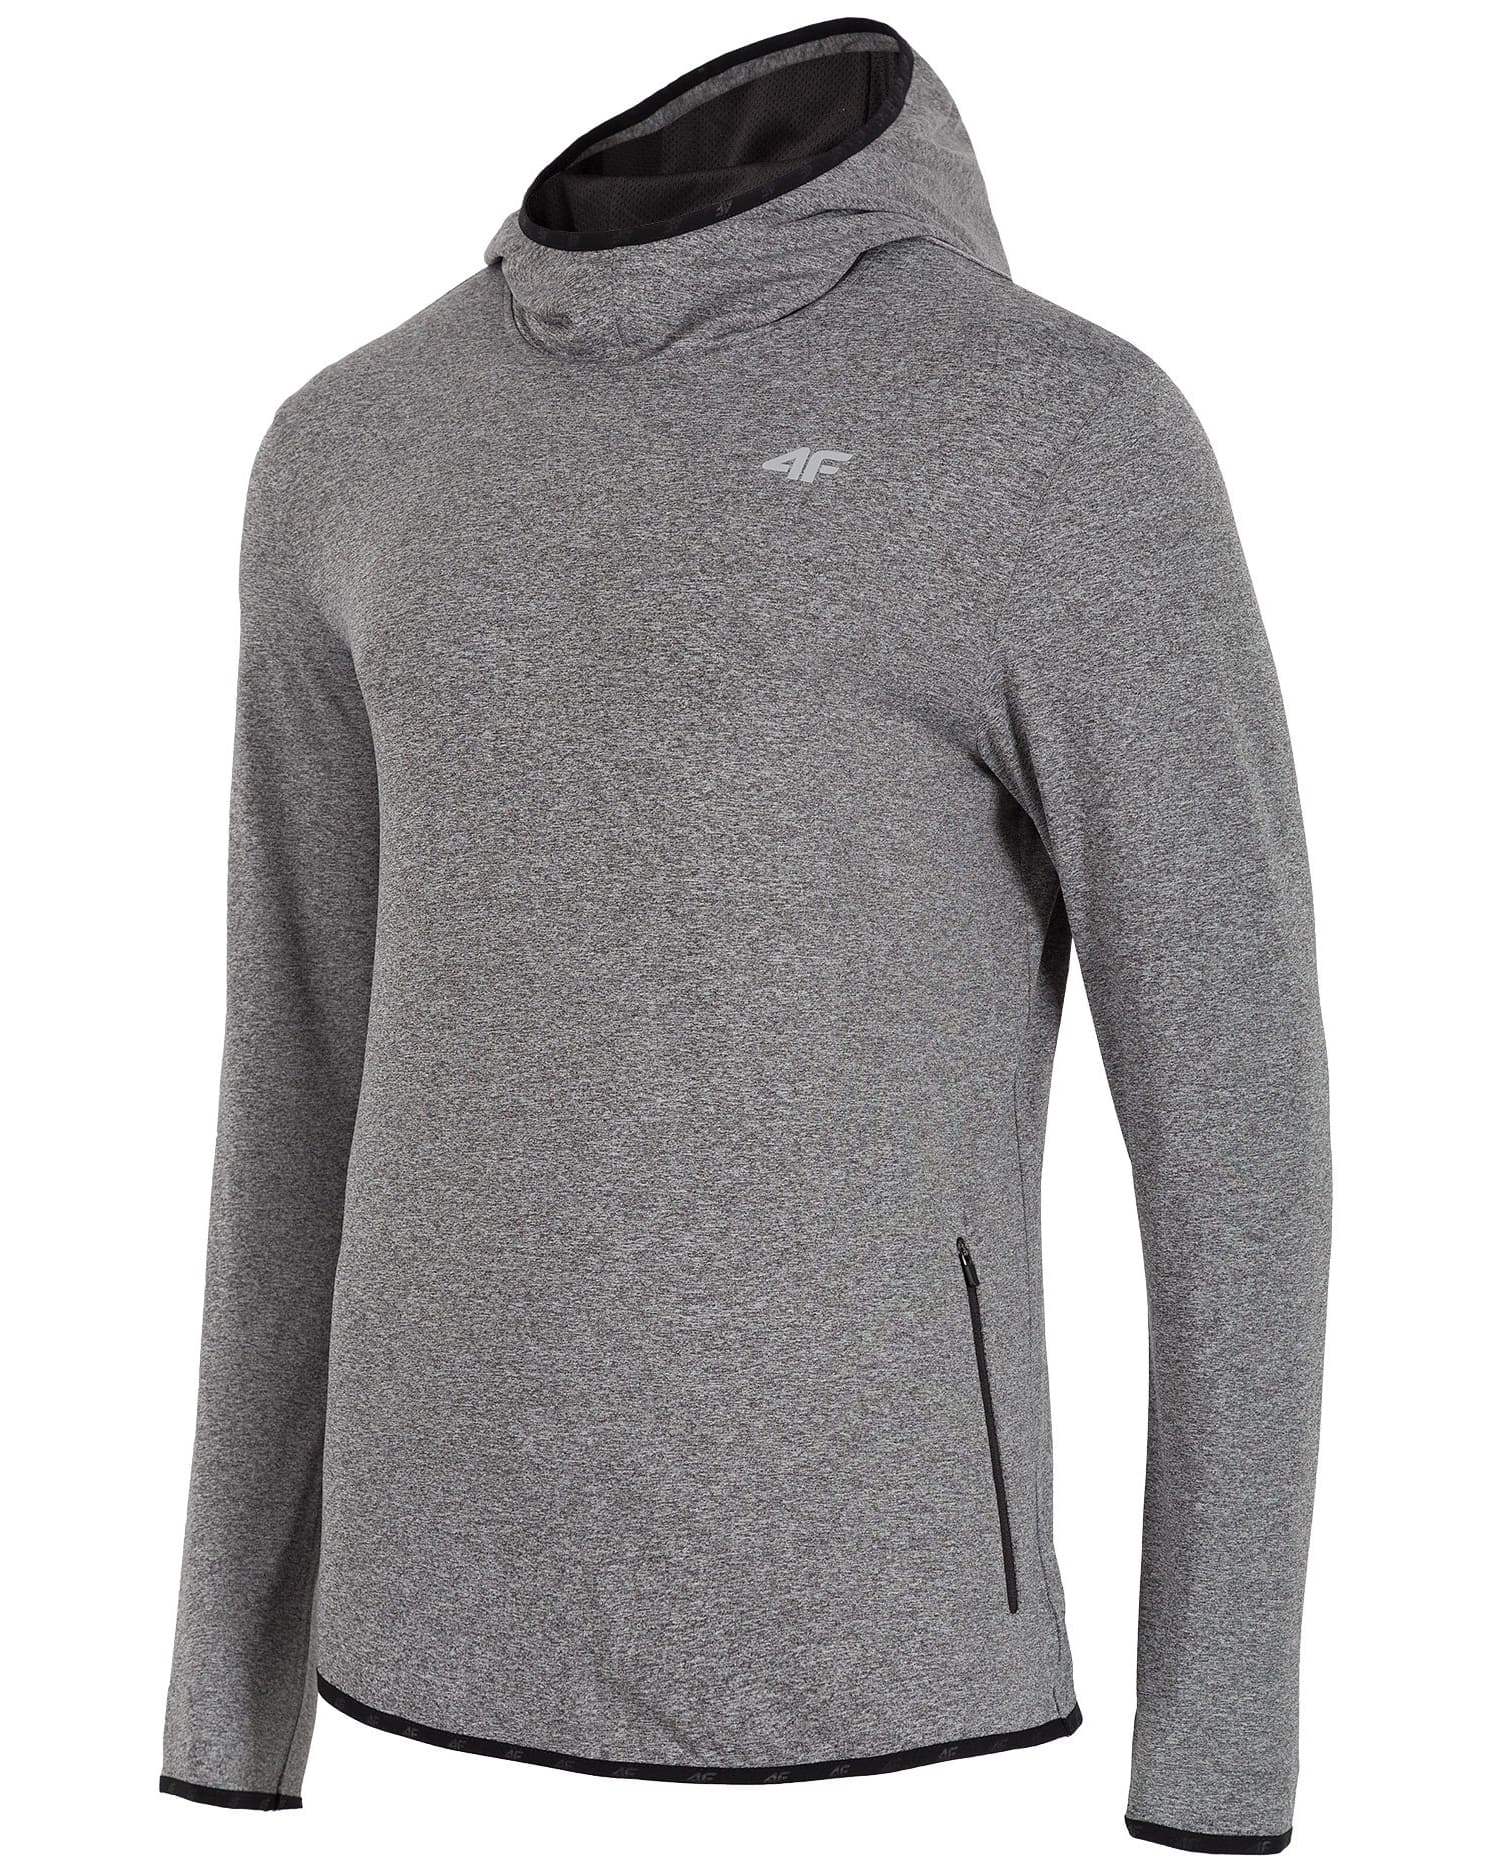 4F Men's Sweatshirt - Light Grey Melange